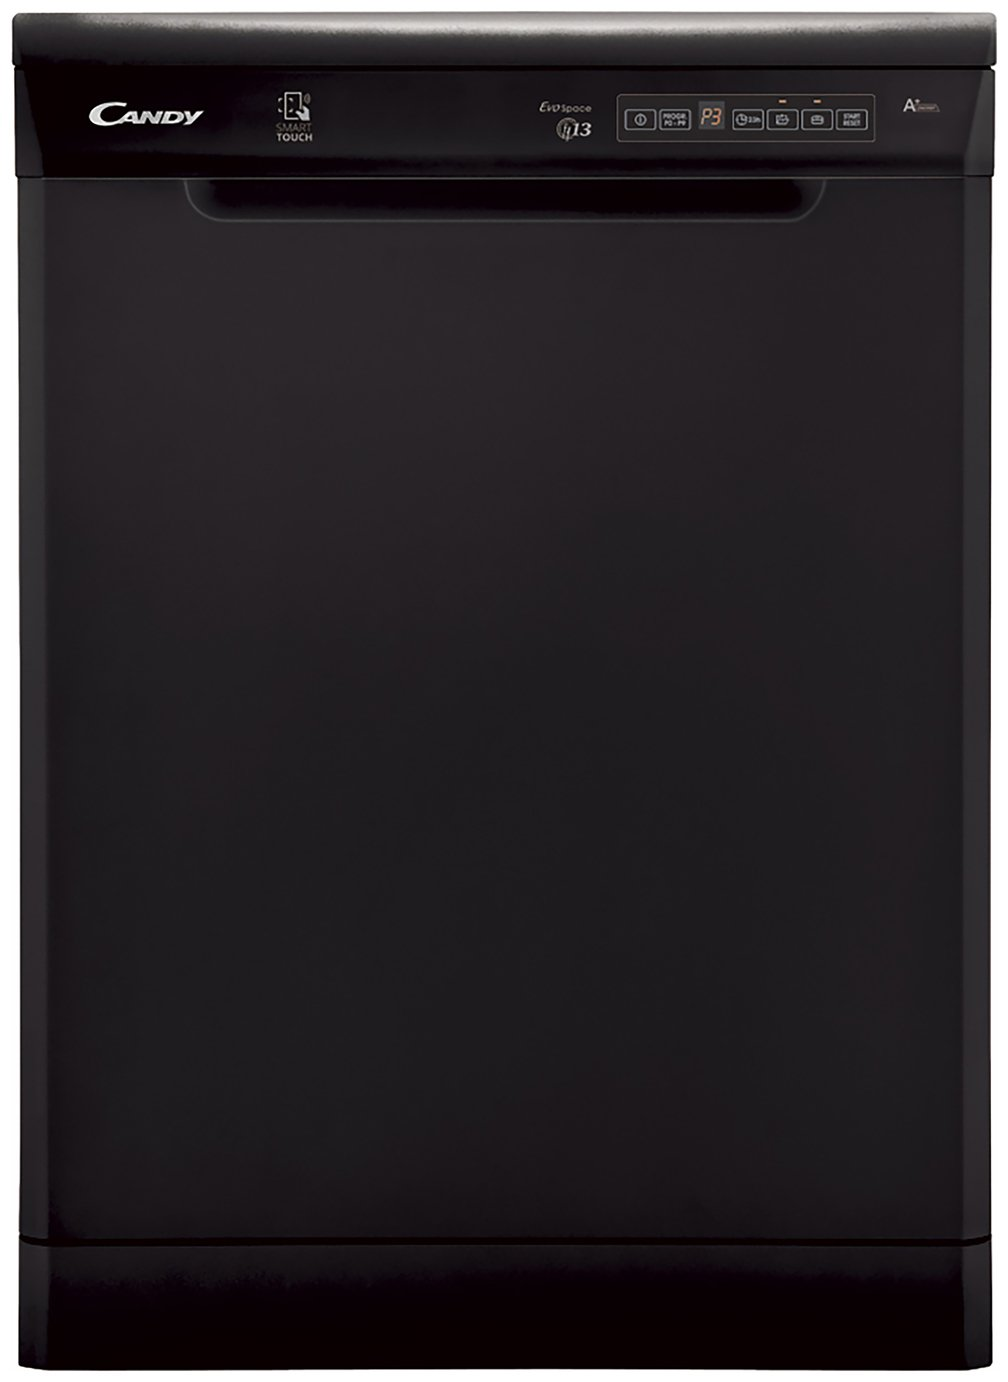 Candy CDP 1DS39B Full Size Dishwasher - Black